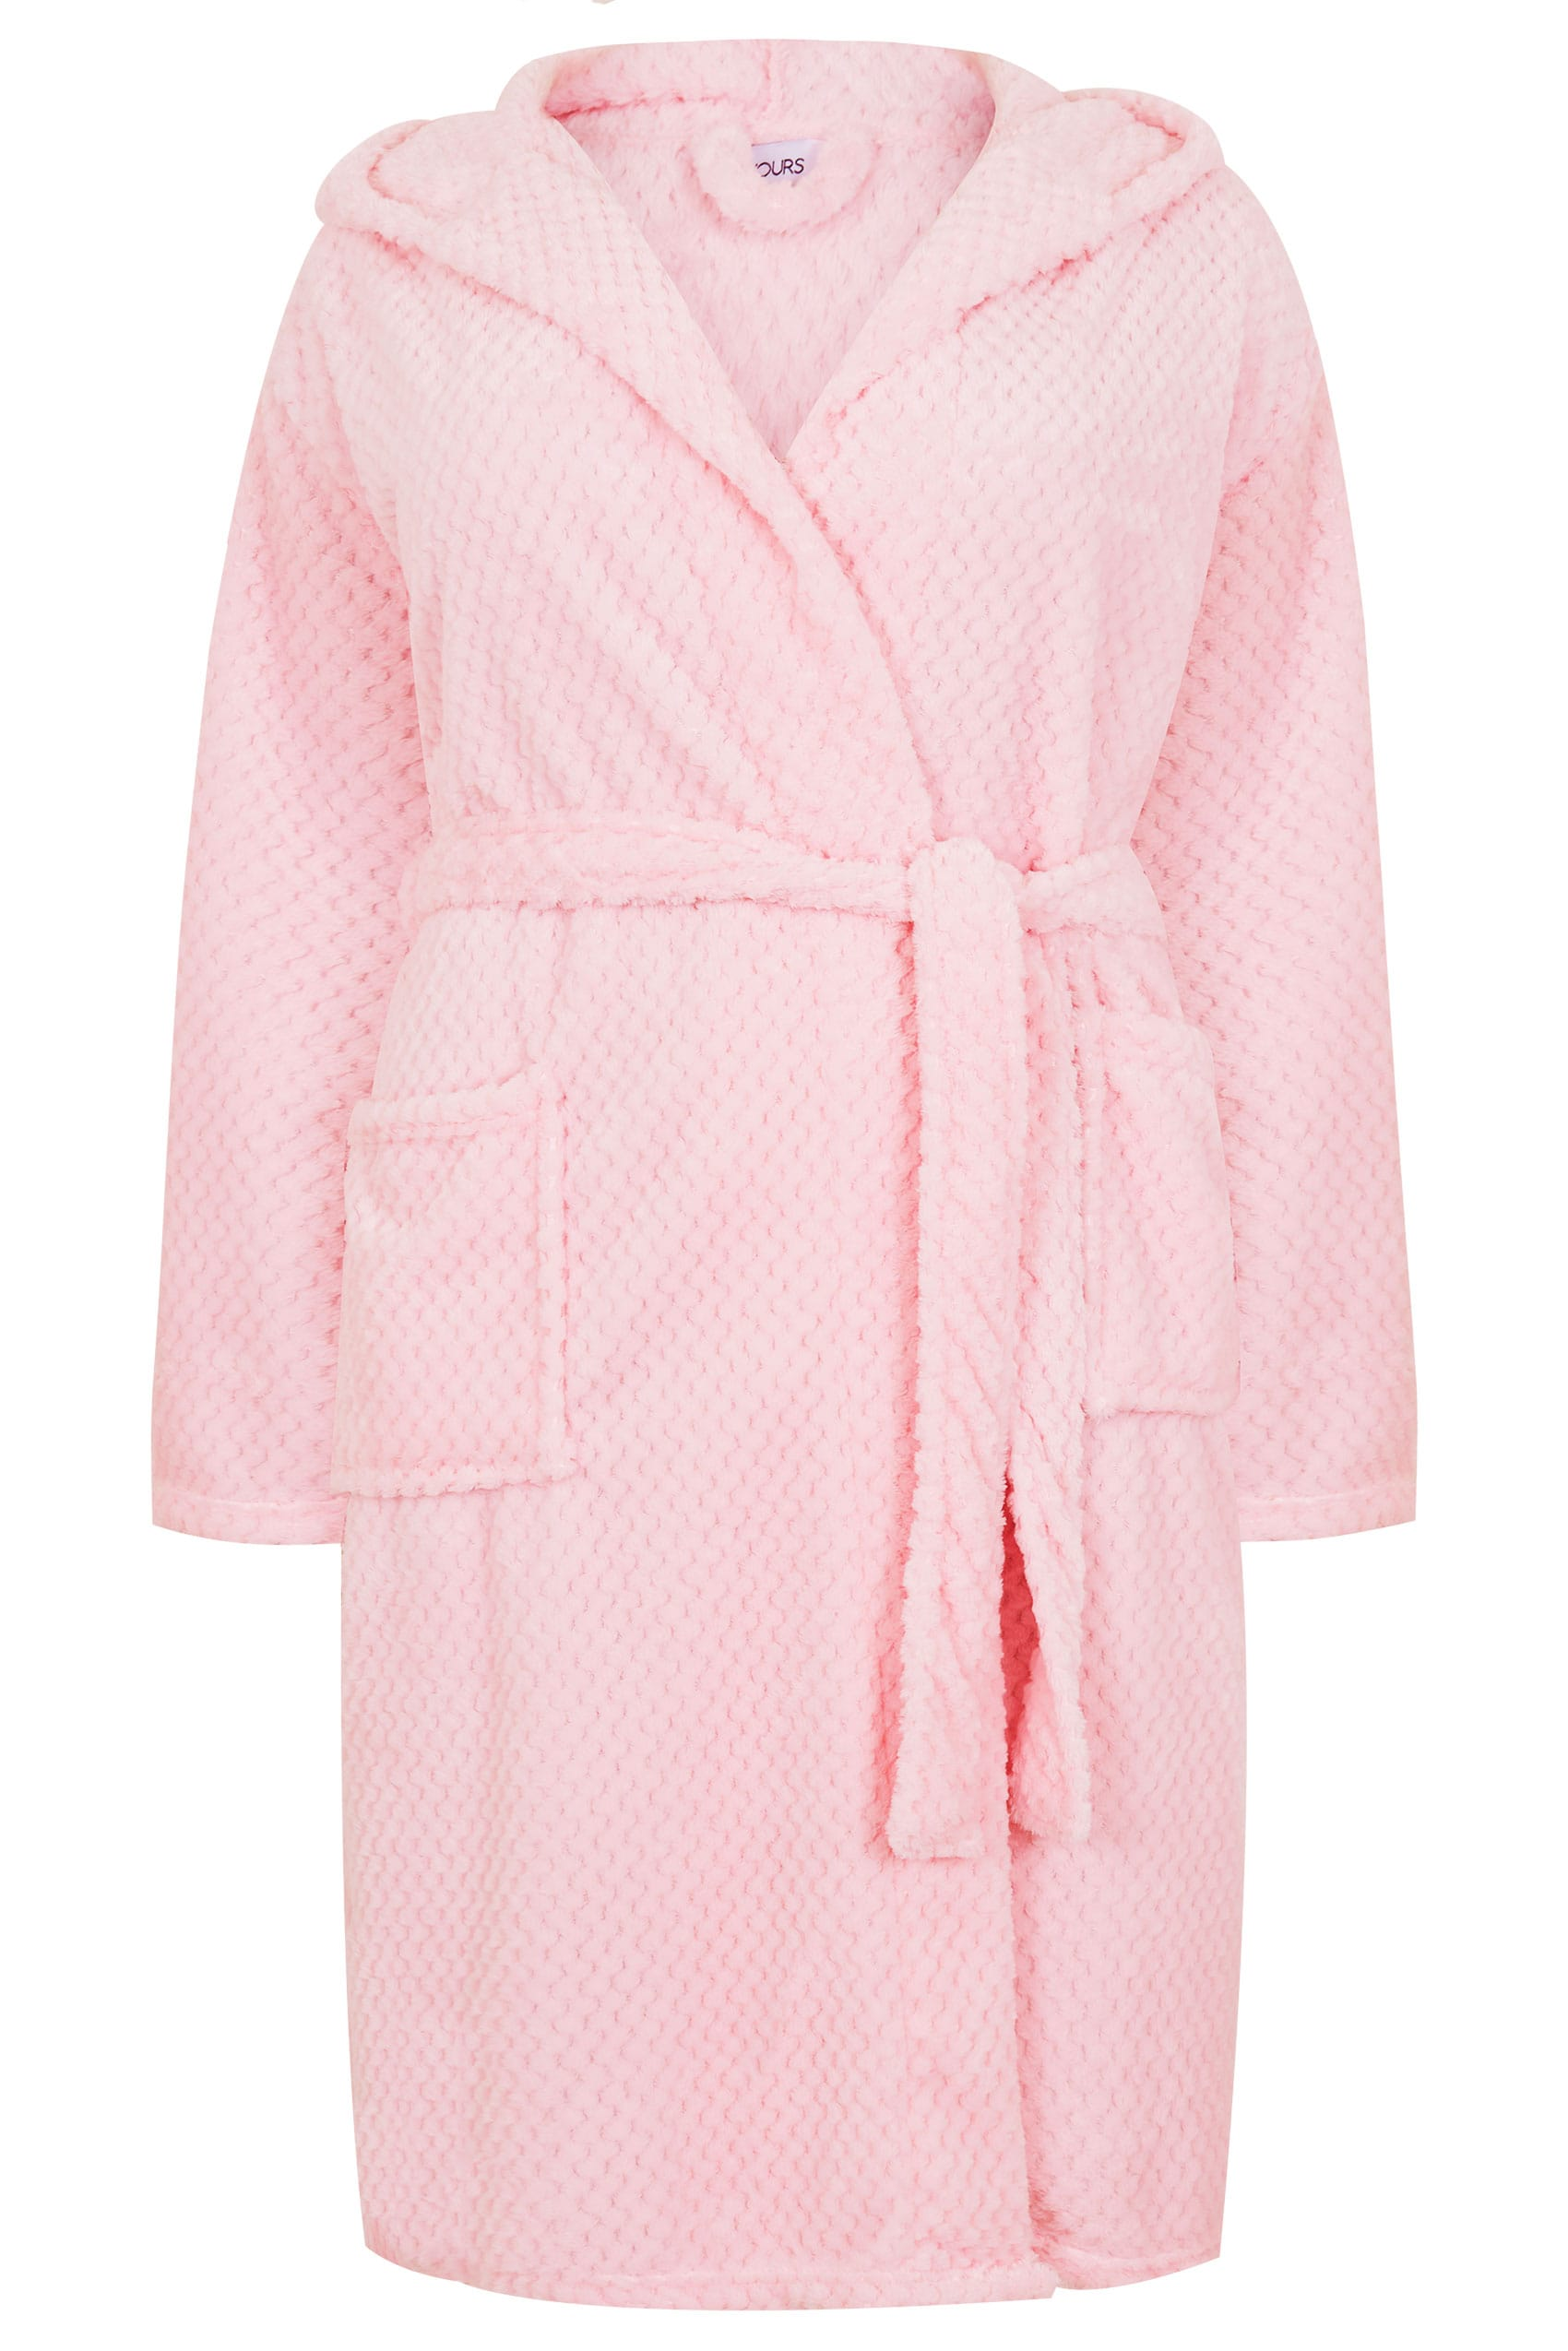 Pink Hooded Fleece Dressing Gown With Pockets, Plus size 16 to 36